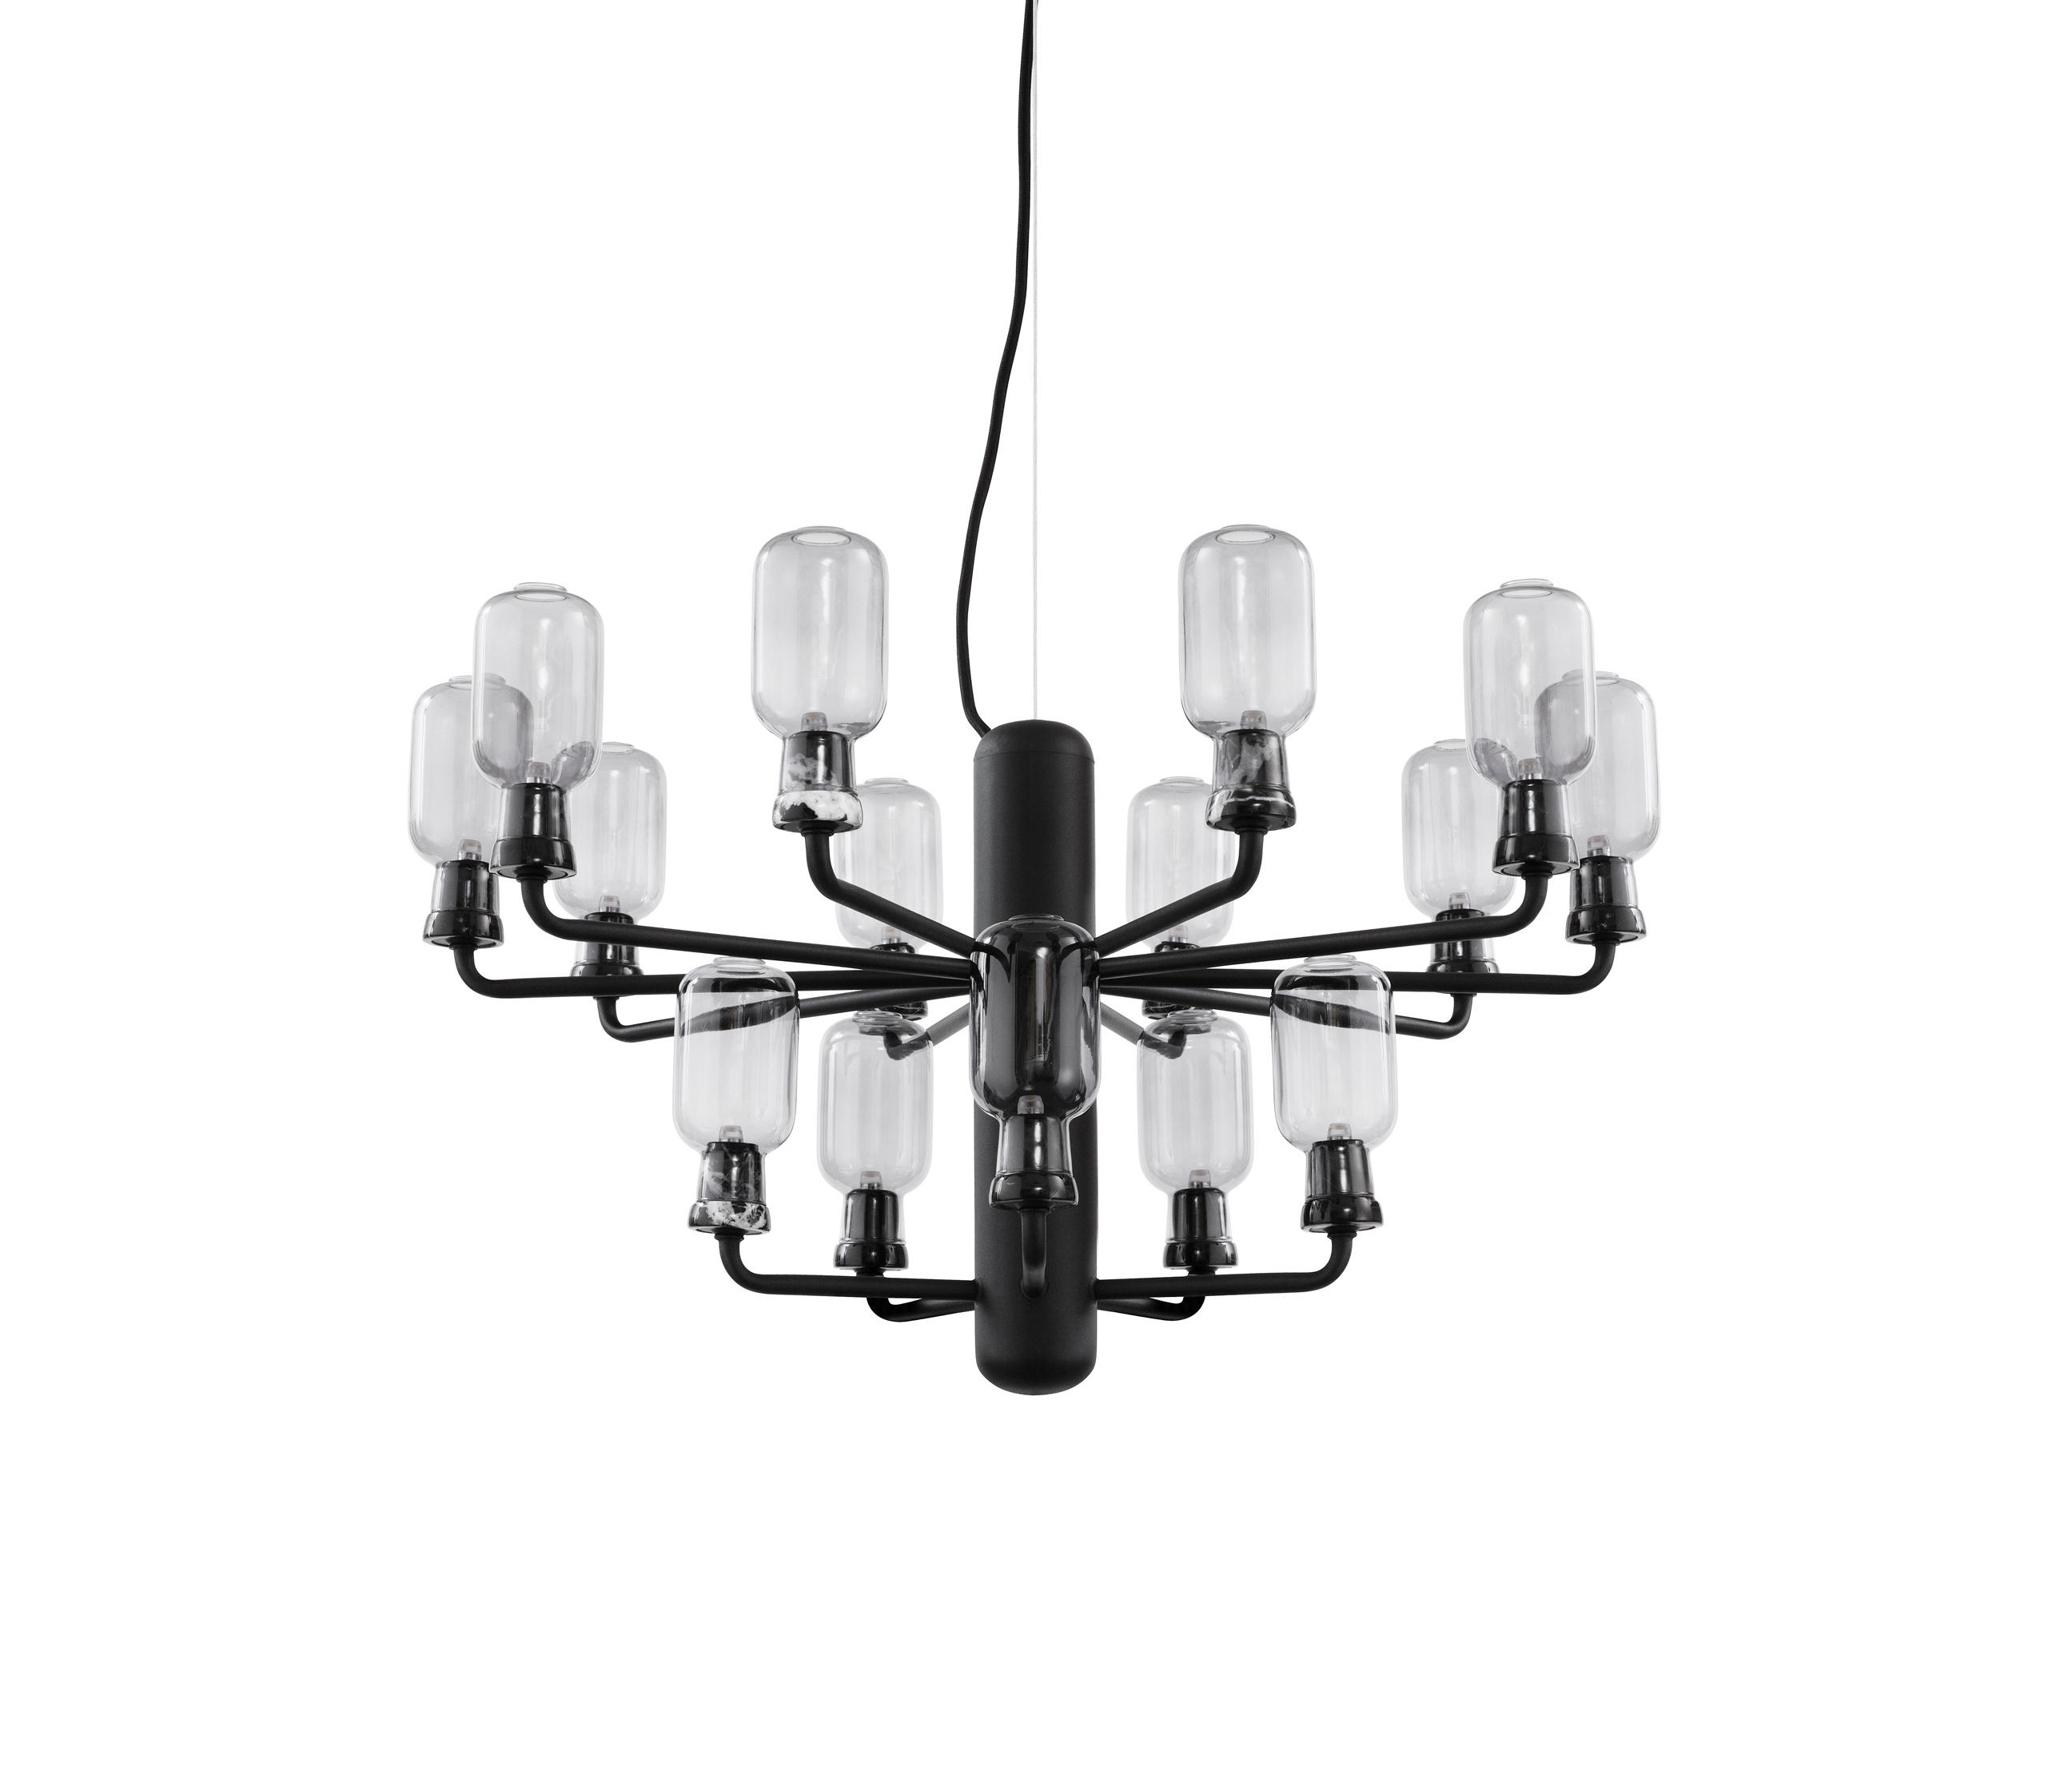 amp chandelier small ceiling suspended chandeliers from. Black Bedroom Furniture Sets. Home Design Ideas